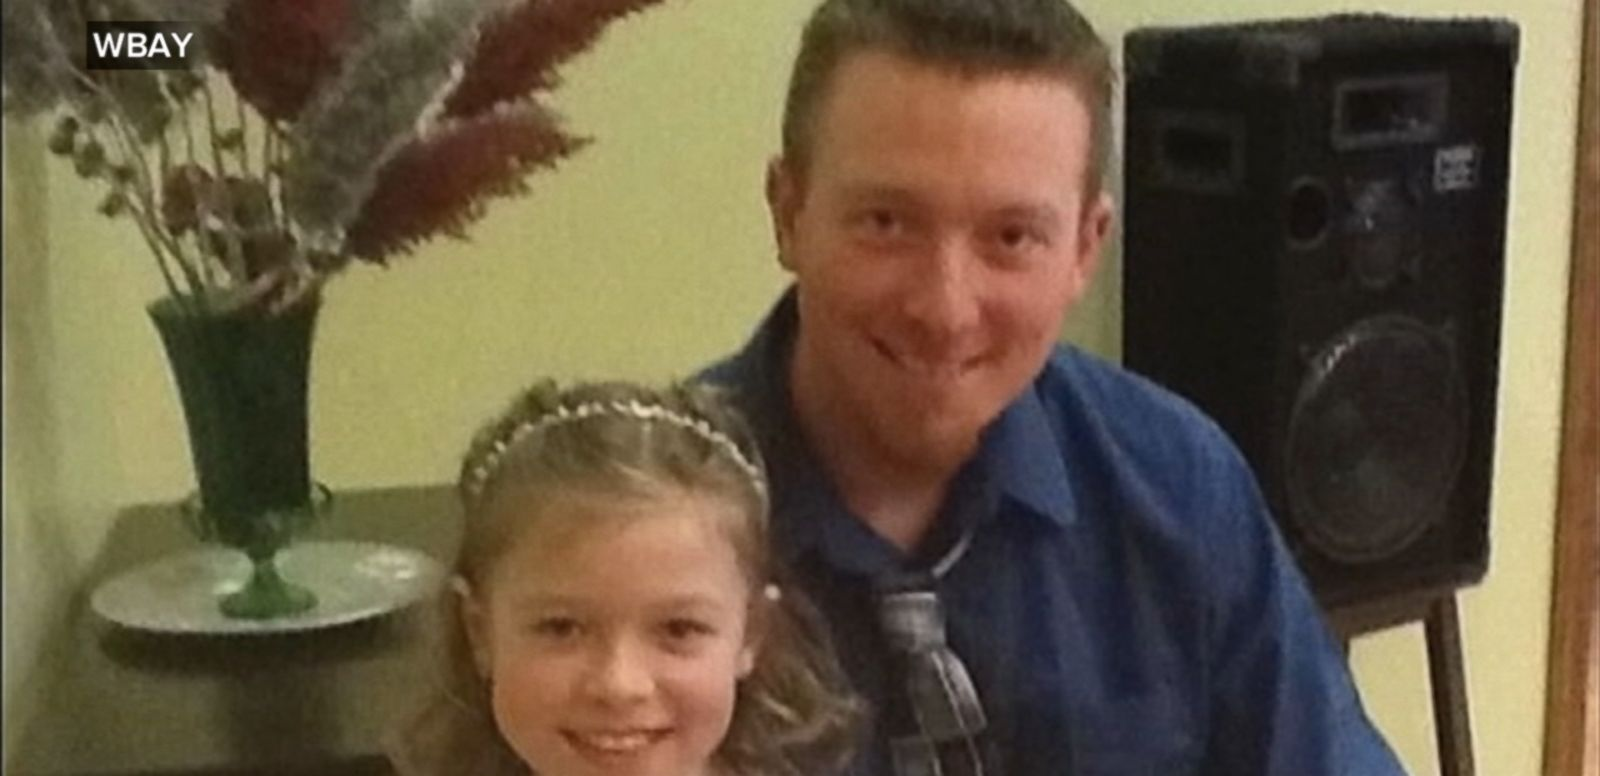 VIDEO: Jonathan Stoffel and his 11-year-old daughter, Olivia, were shot while pedaling their bikes across a bridge.